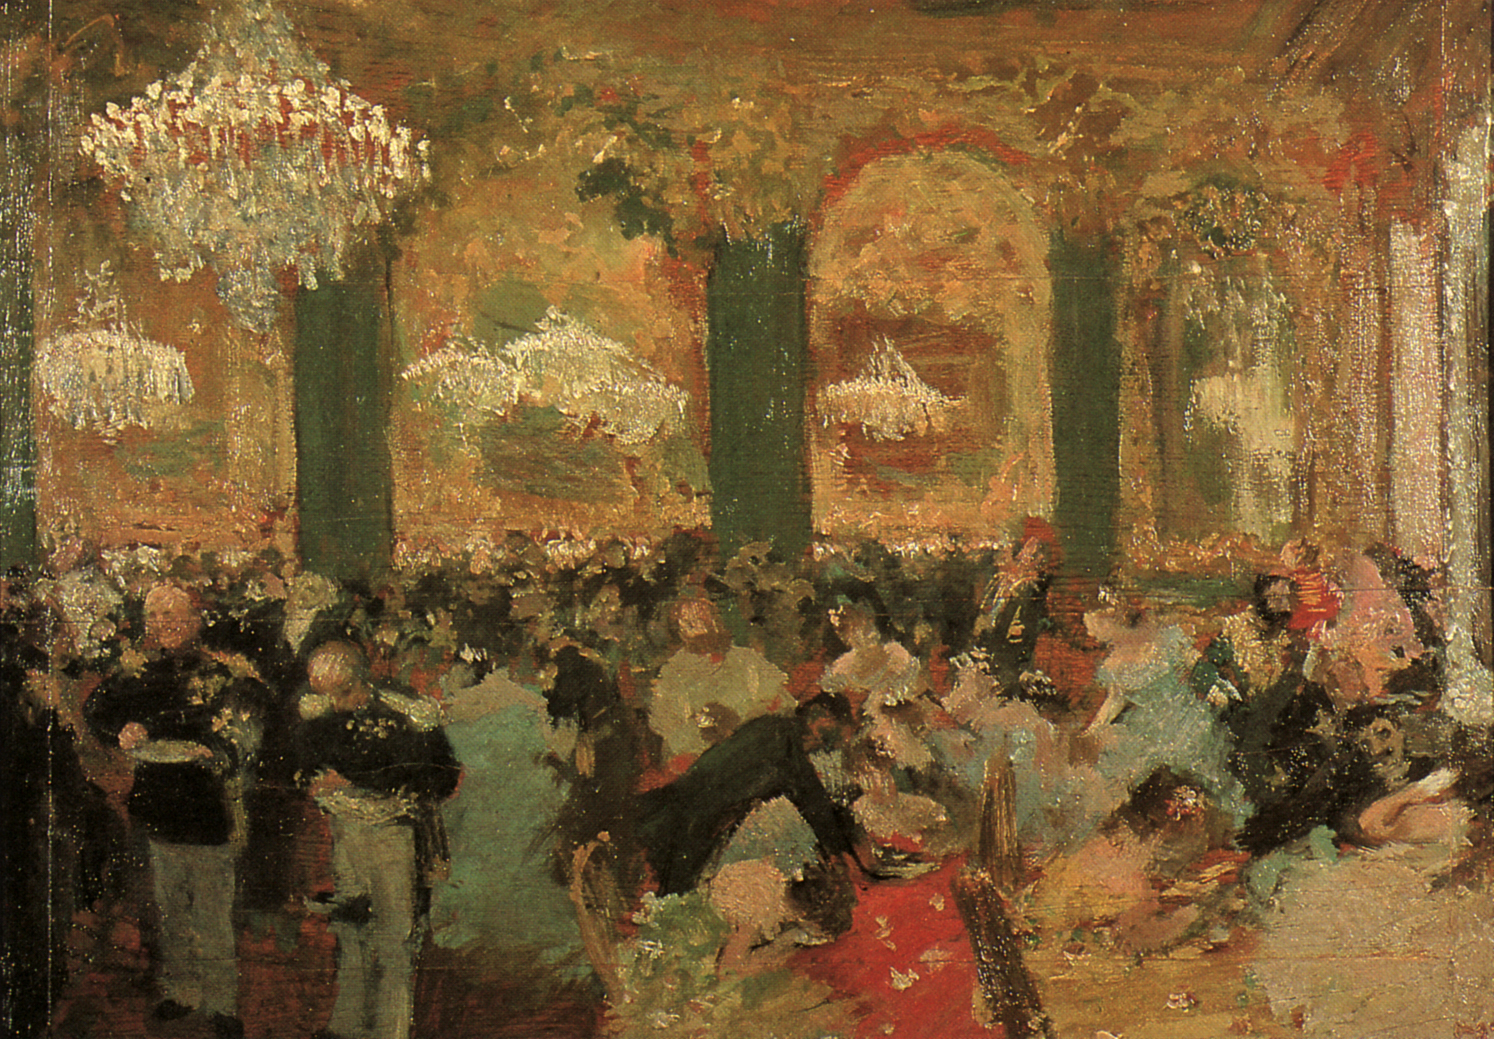 Fig. 6. Edgar Degas, after Adolph Menzel, Supper at the Ball, 1879. Oil on wood panel, 17 3/4 × 26 1/3 in. (45 × 67 cm). Musée d'Art Moderne et Contemporaine, Strasbourg